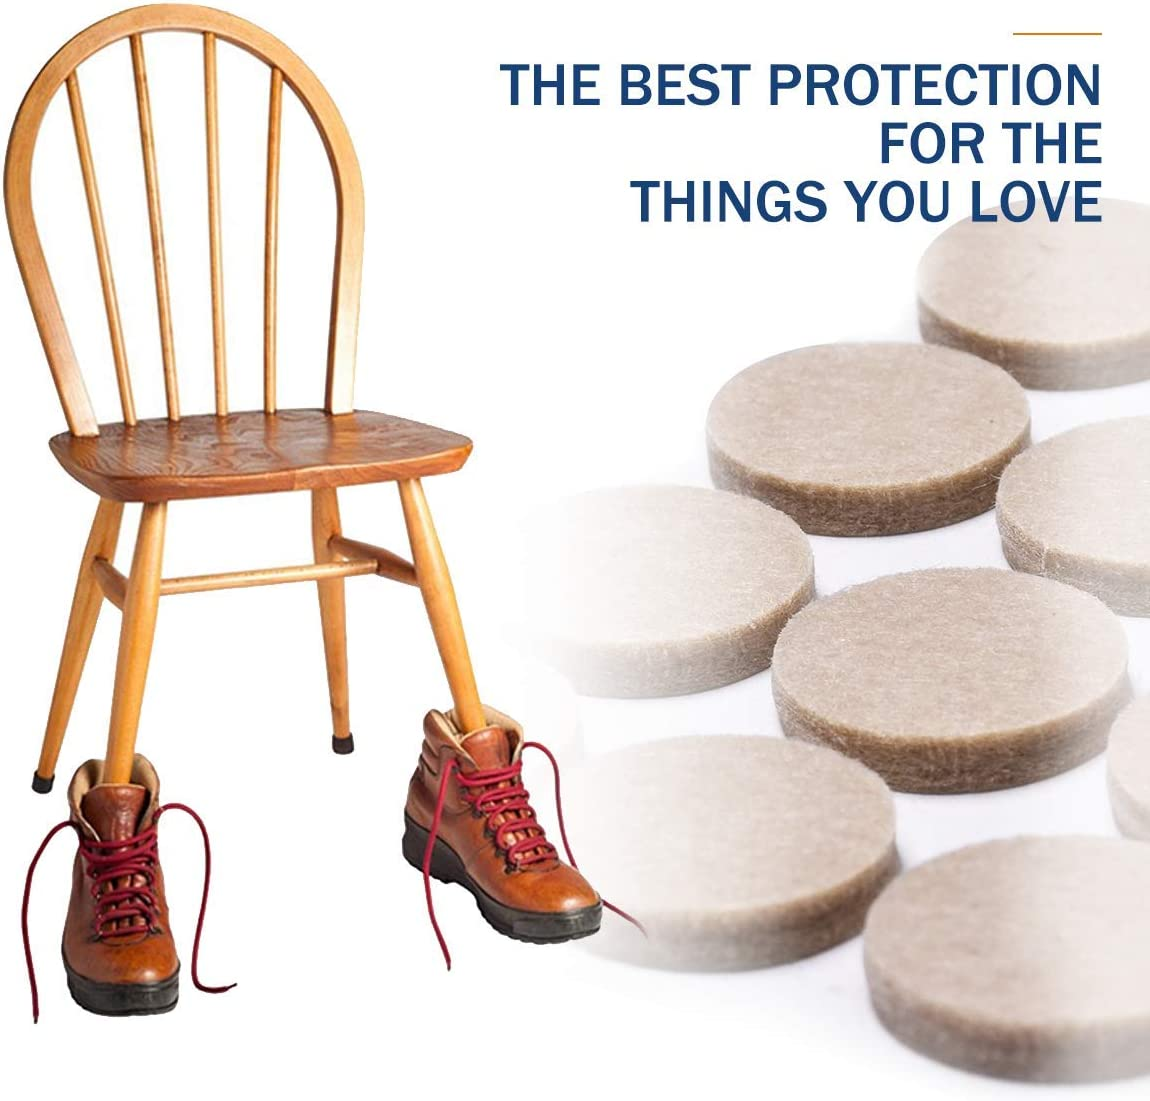 Protect Your Hardwood /& Laminate Flooring Premium Chair Felts Pads for Furniture Feet Wood Floors Furniture Pads Felt Pads for Furniture on Hardwood Floors Value Pack Chair Leg Floor Protectors